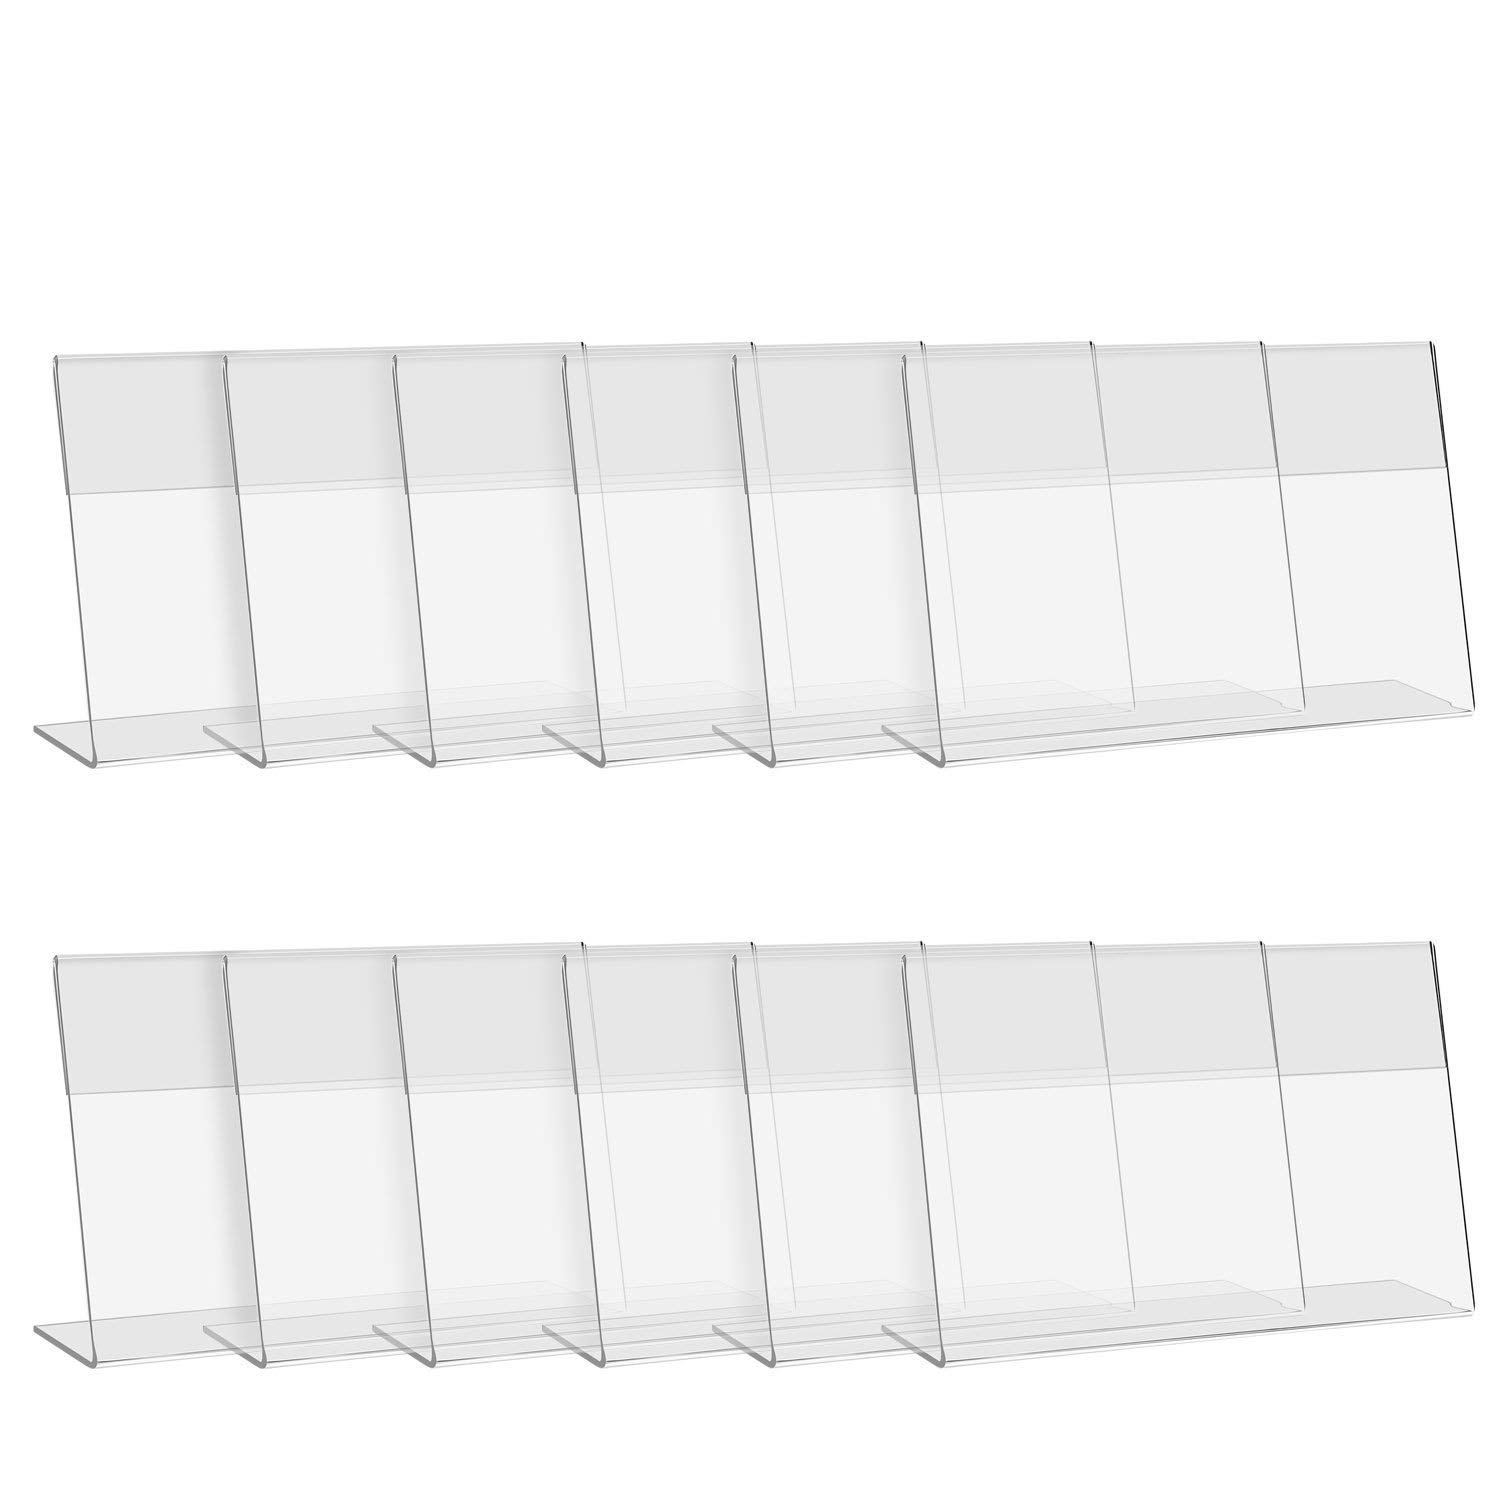 CRUODA Acrylic Sign Display Holder Menu Holders Table Card Holders Photo Frames Ad Frames (6x4 inches 12pcs)